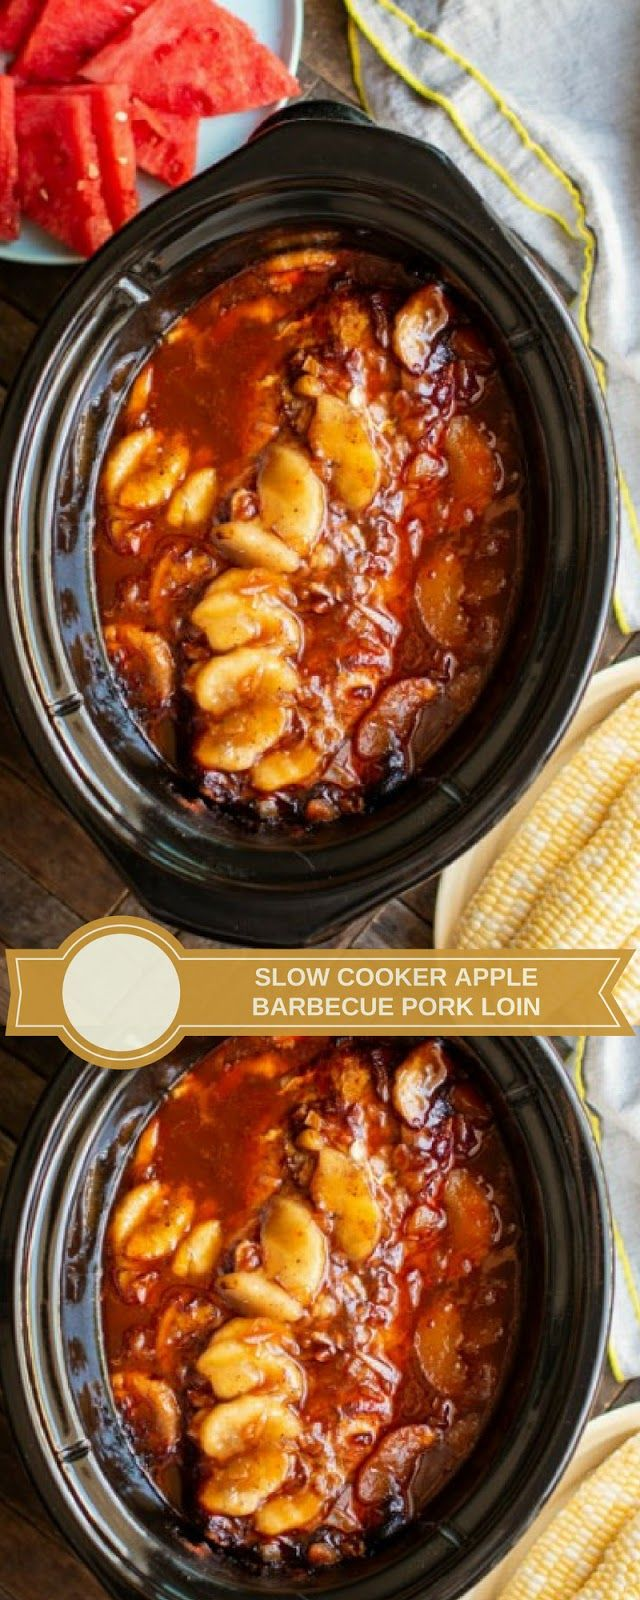 SLOW COOKER APPLE BARBECUE PORK LOIN | Slow cooker apples ...